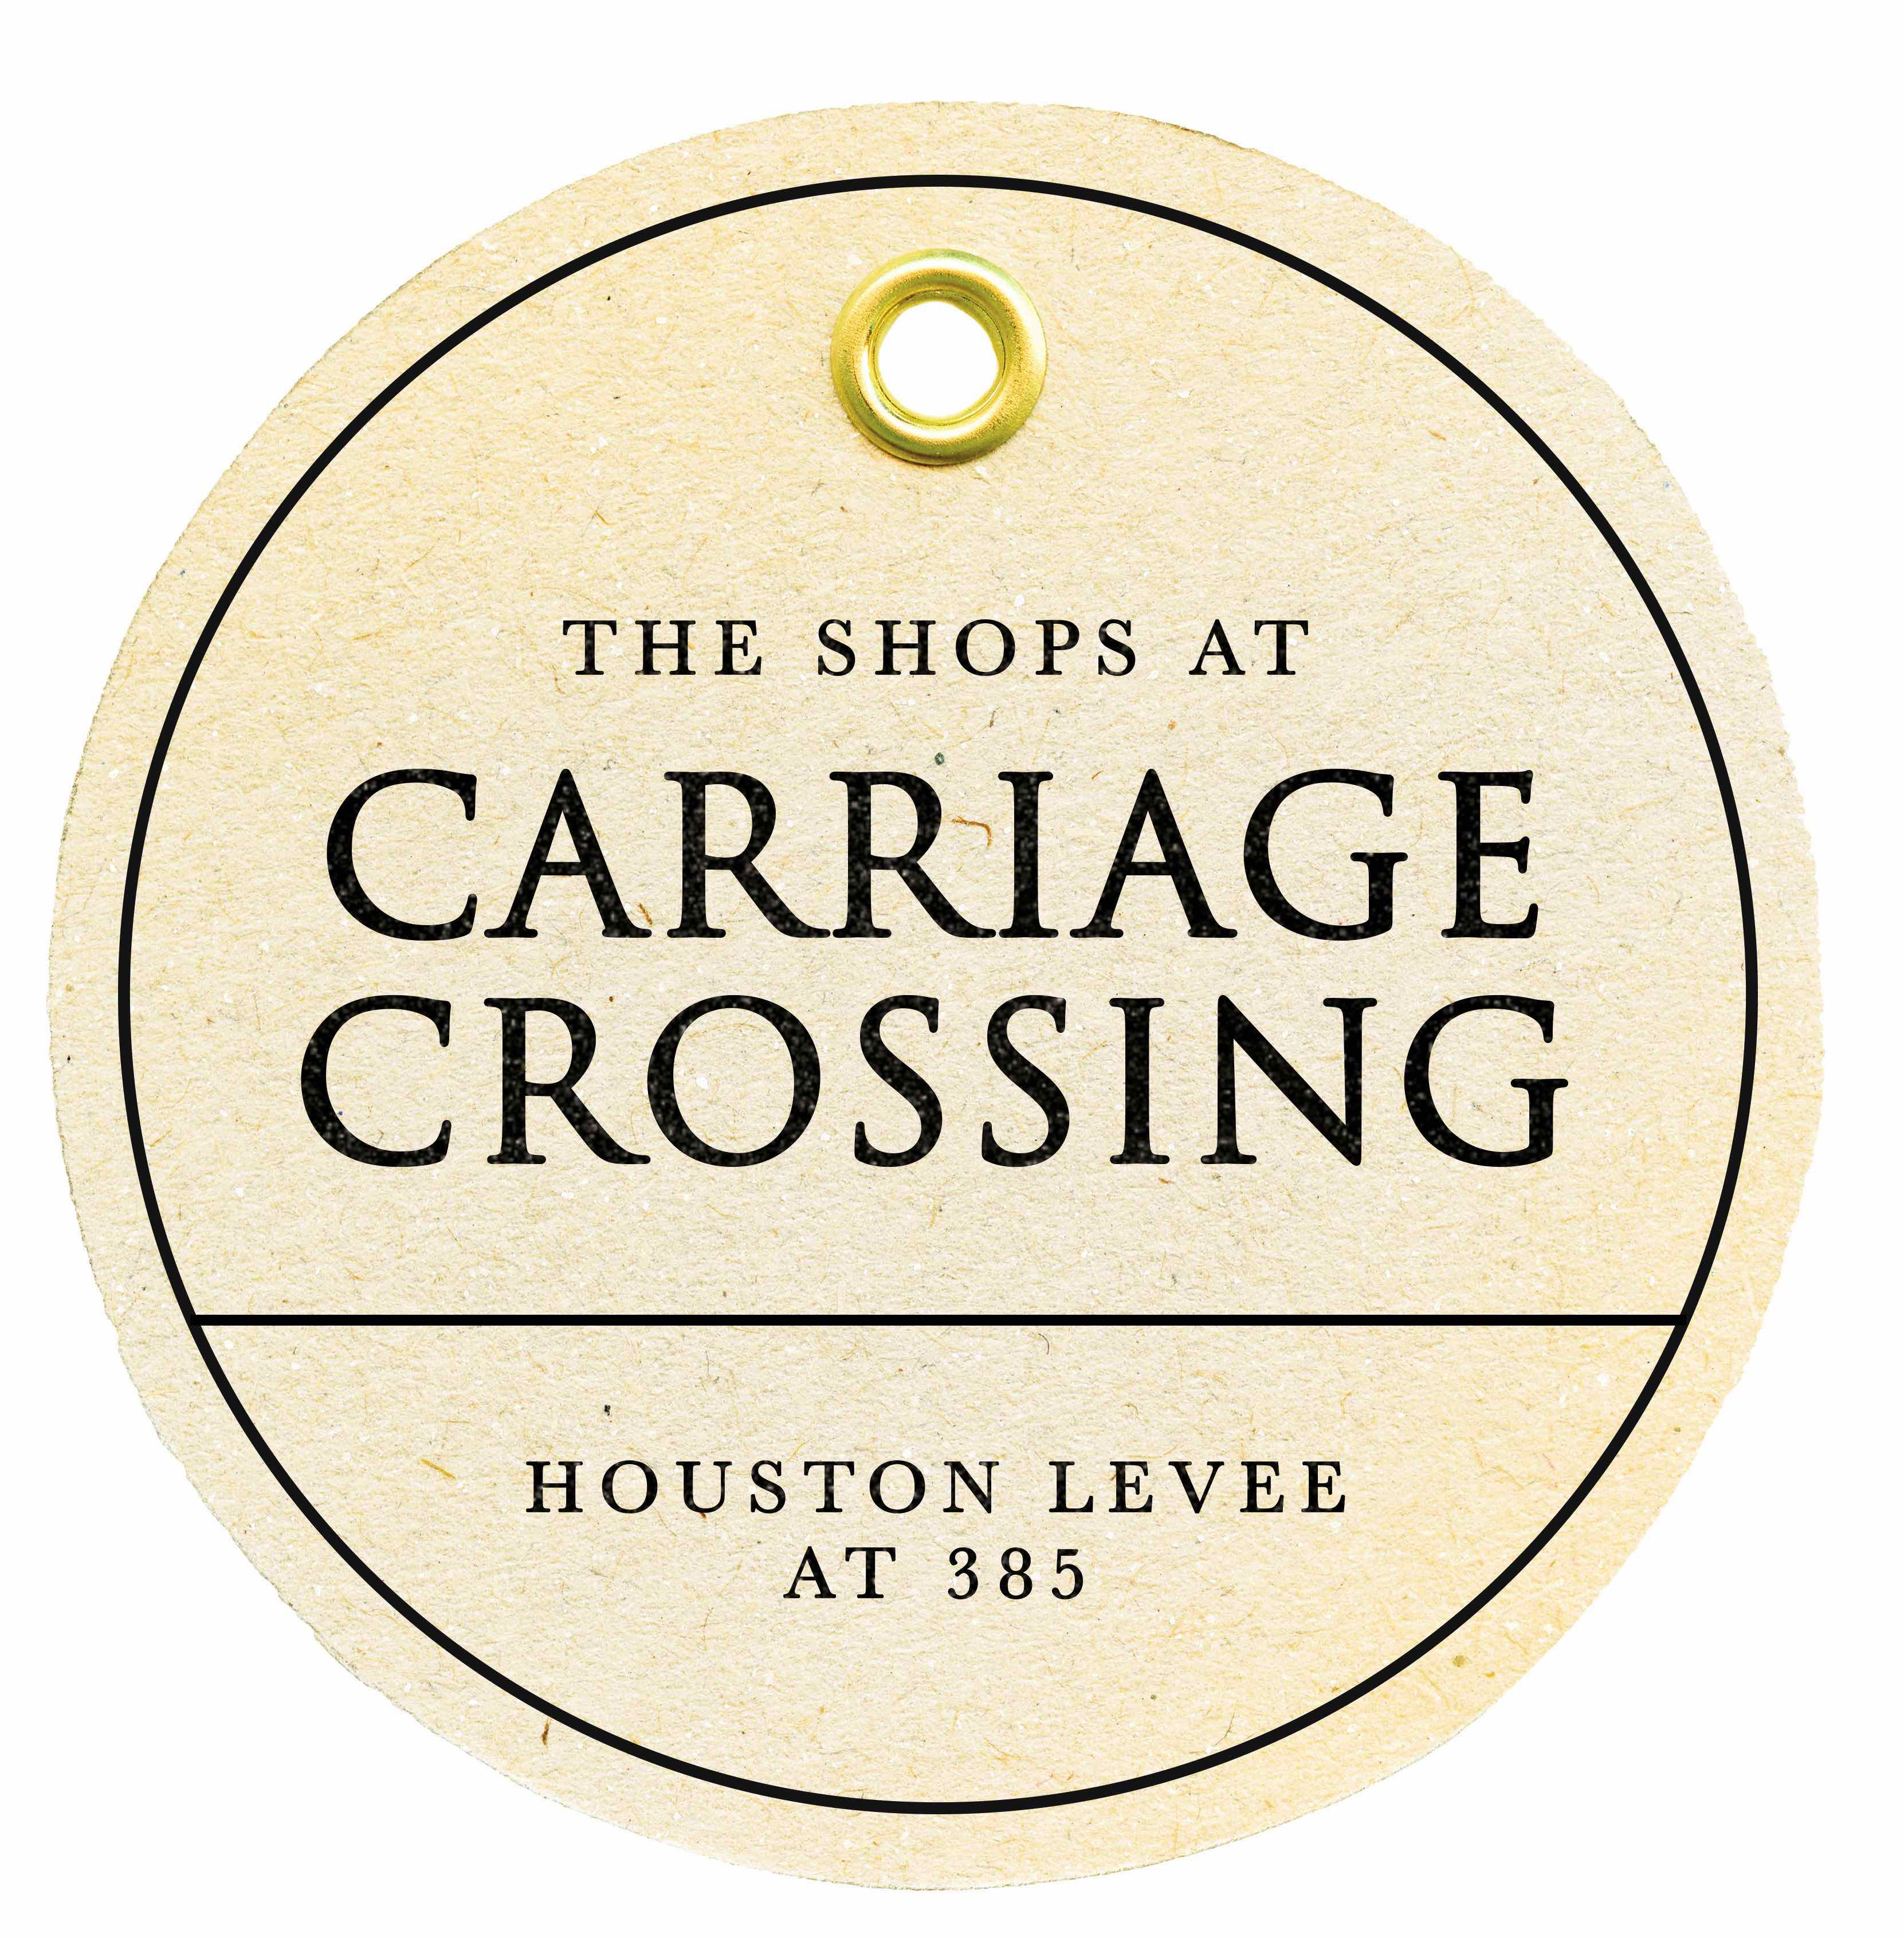 Carriage Crossing